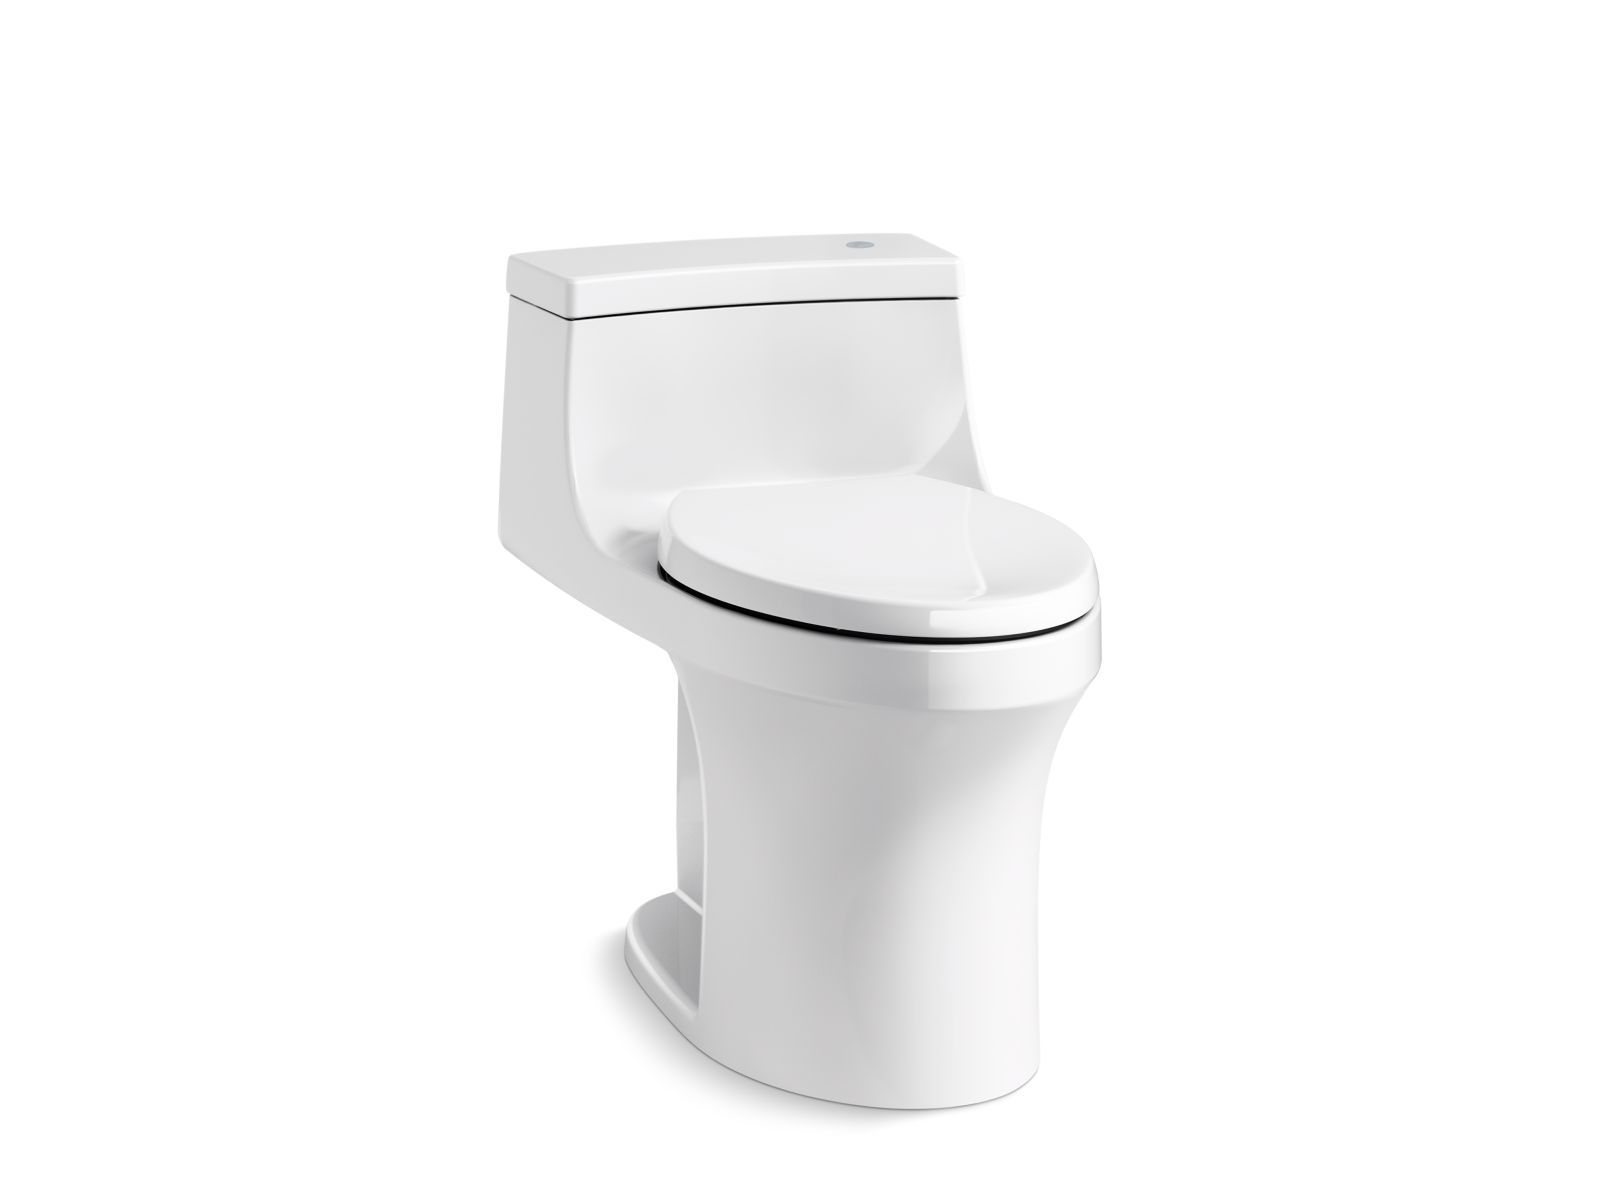 Kohler San Souci™ K-4000-0 Touchless Comfort Height® one-piece compact elongated 1.28 gpf toilet with AquaPiston® flushing technology White